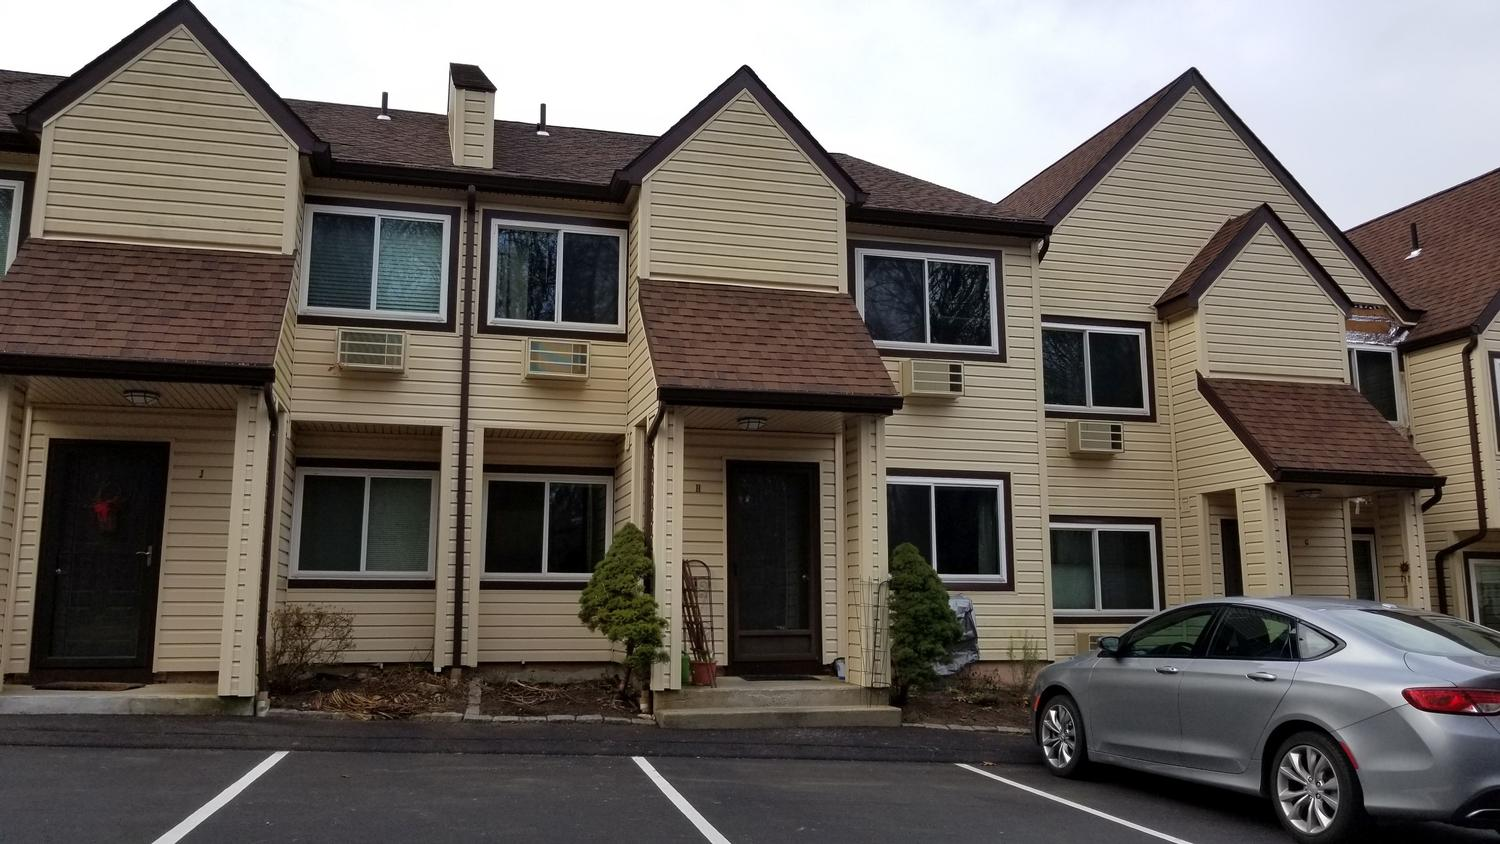 Photo of real estate for sale located at 225 H High Street Westerly, RI 02891